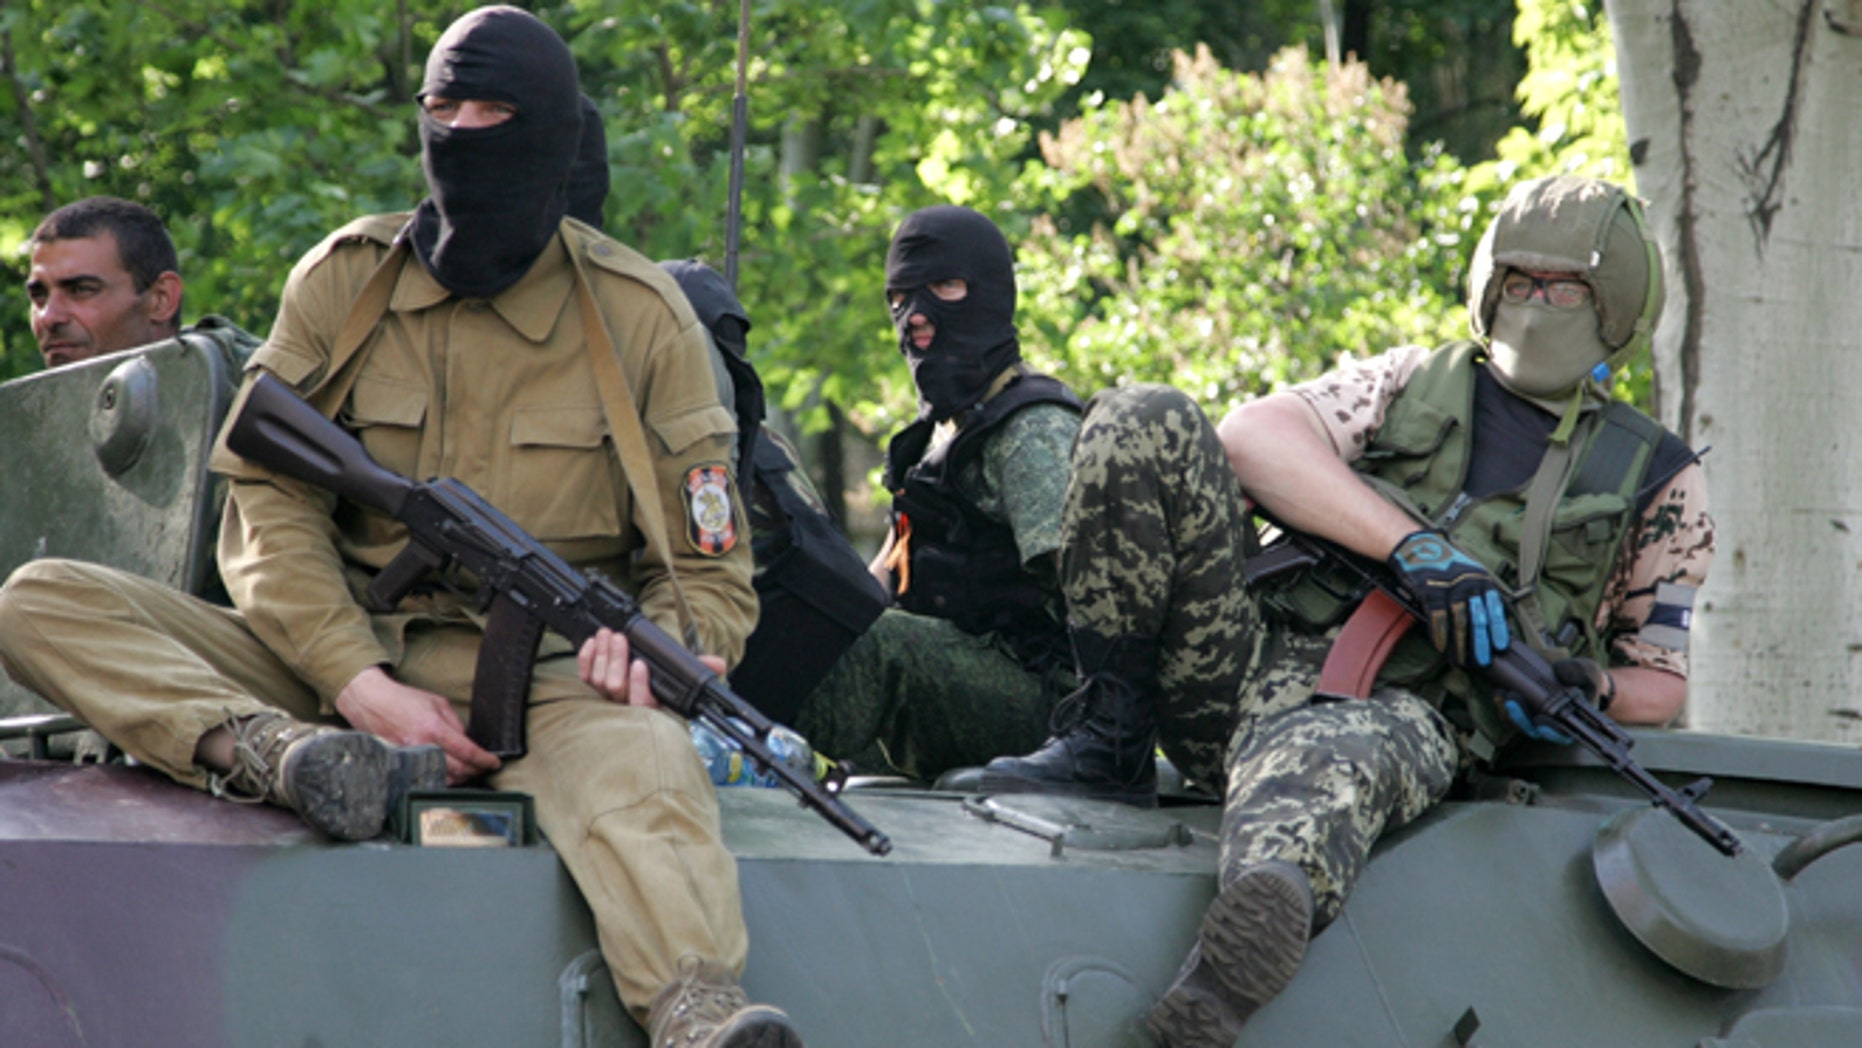 May 20, 2014: Pro-Russian gunmen atop of an armored personnel carrier patrol a street in Donetsk, Ukraine. One rebel leader in Donetsk, Denis Pushilin, retaliated Tuesday by threatening to nationalize Akhmetovs assets over his refusal to pay taxes to the Donetsk Peoples Republic.